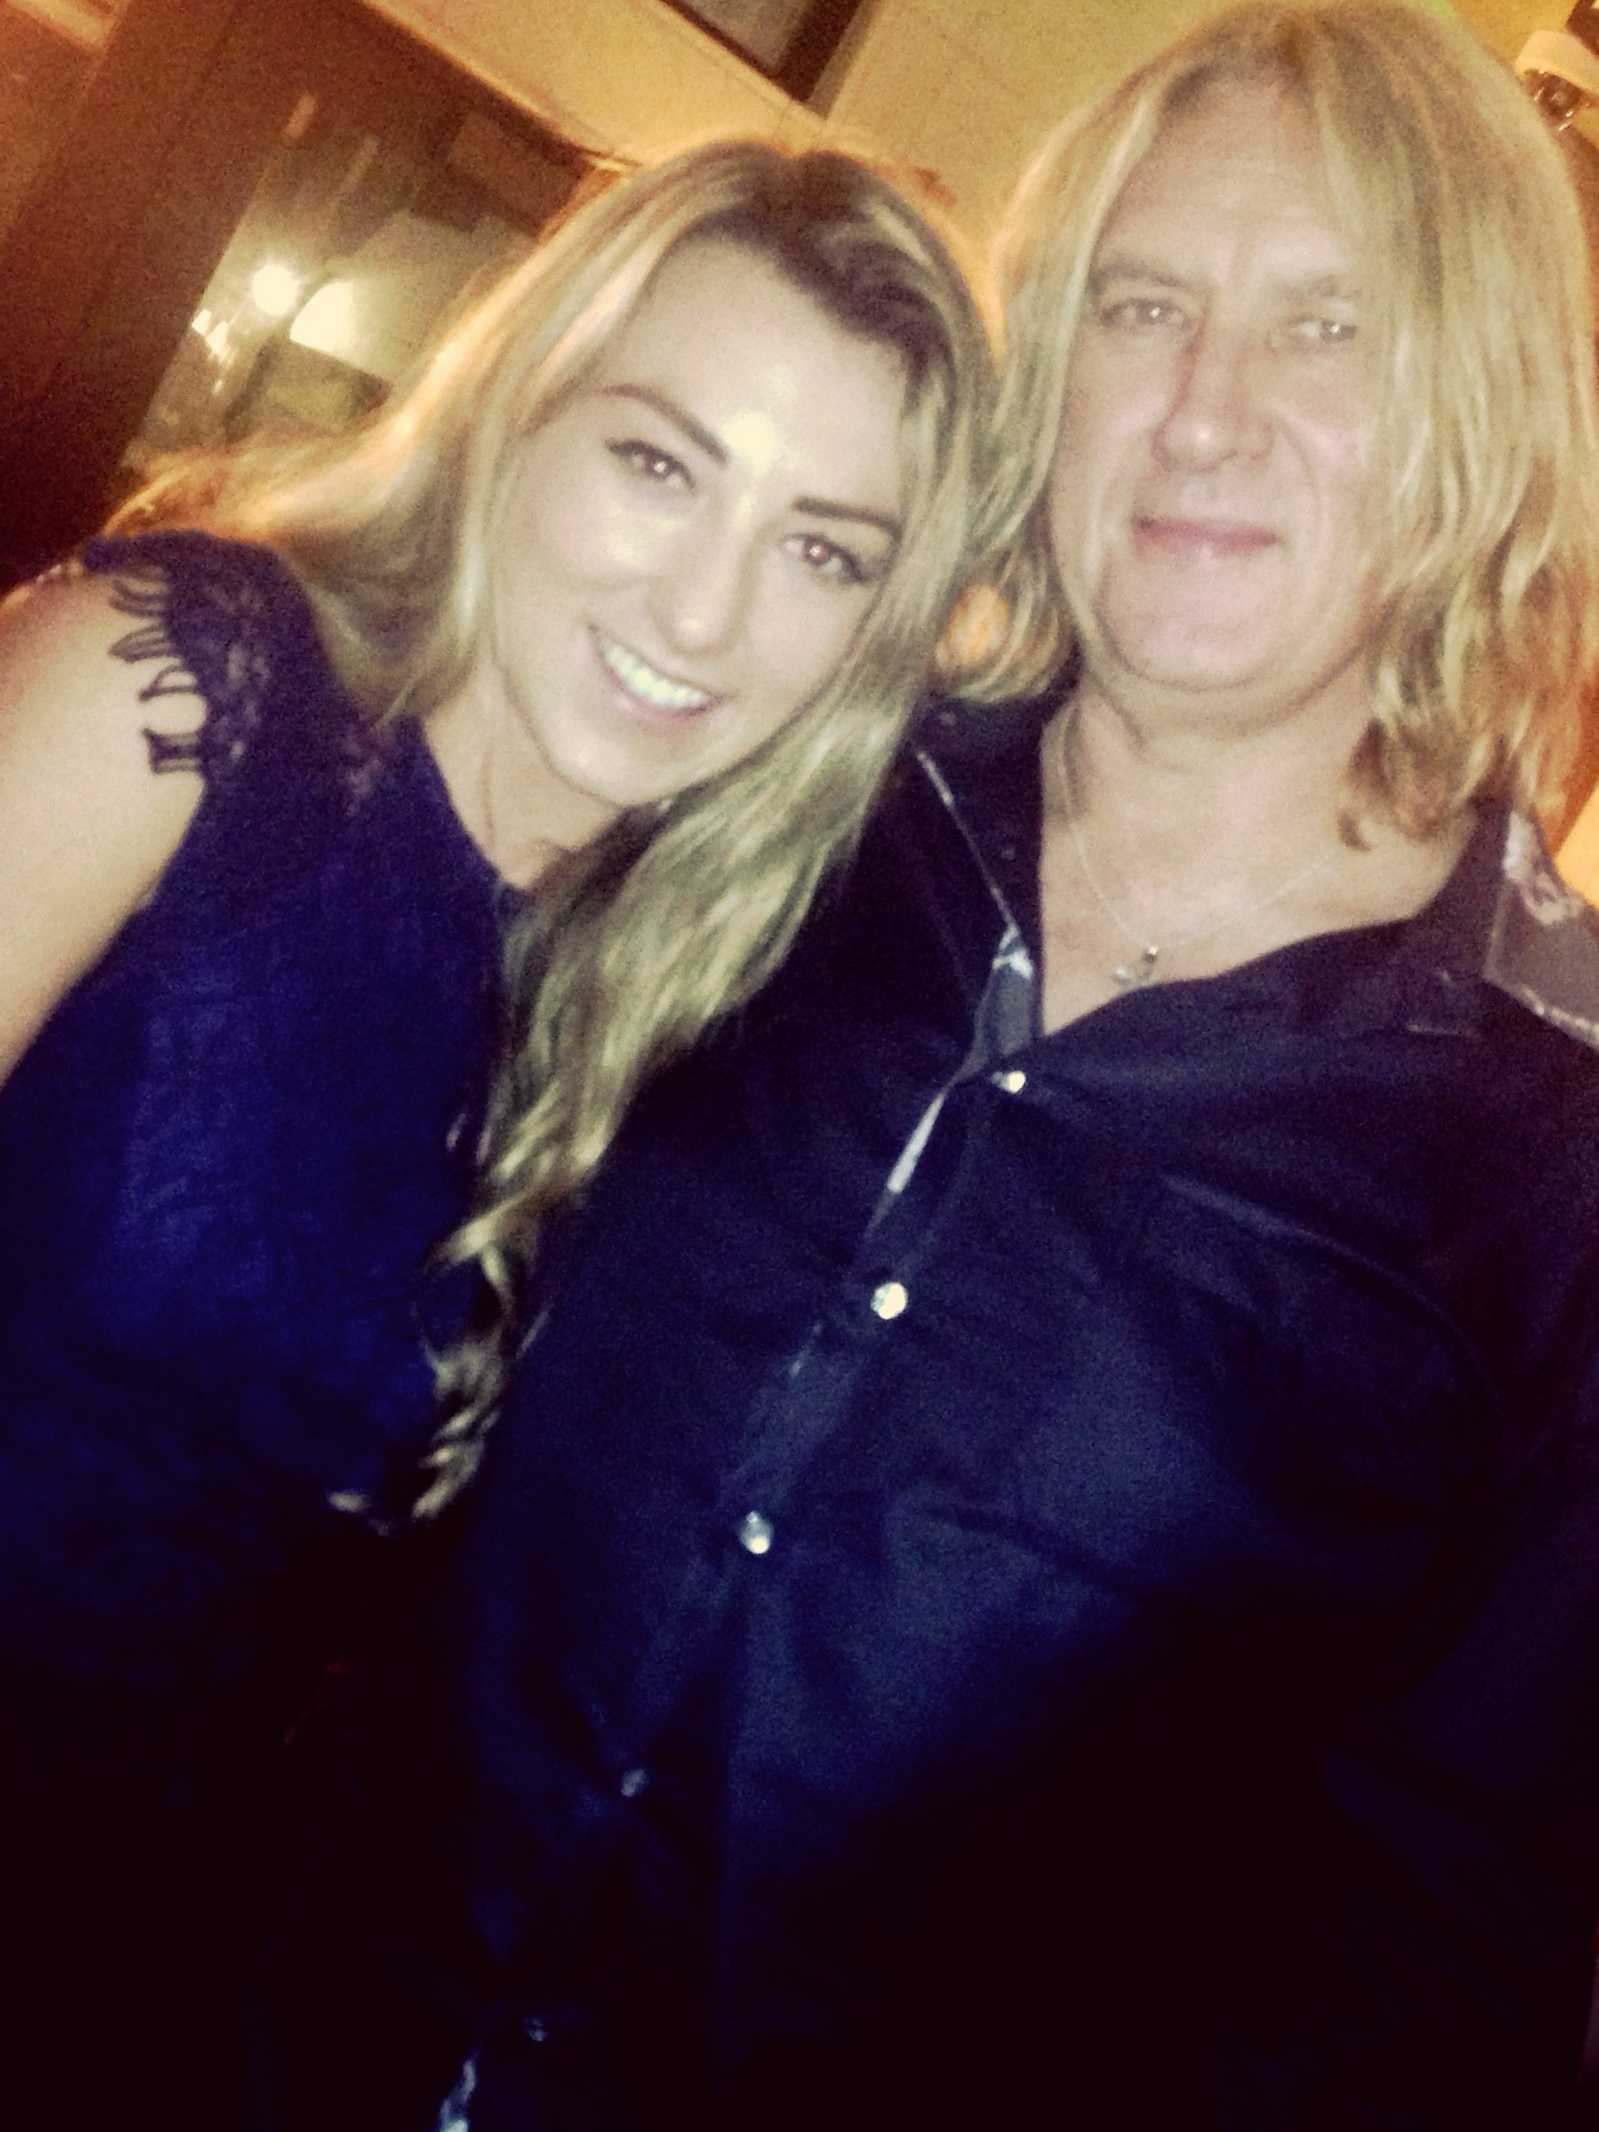 7. Hayley and Joe Elliot